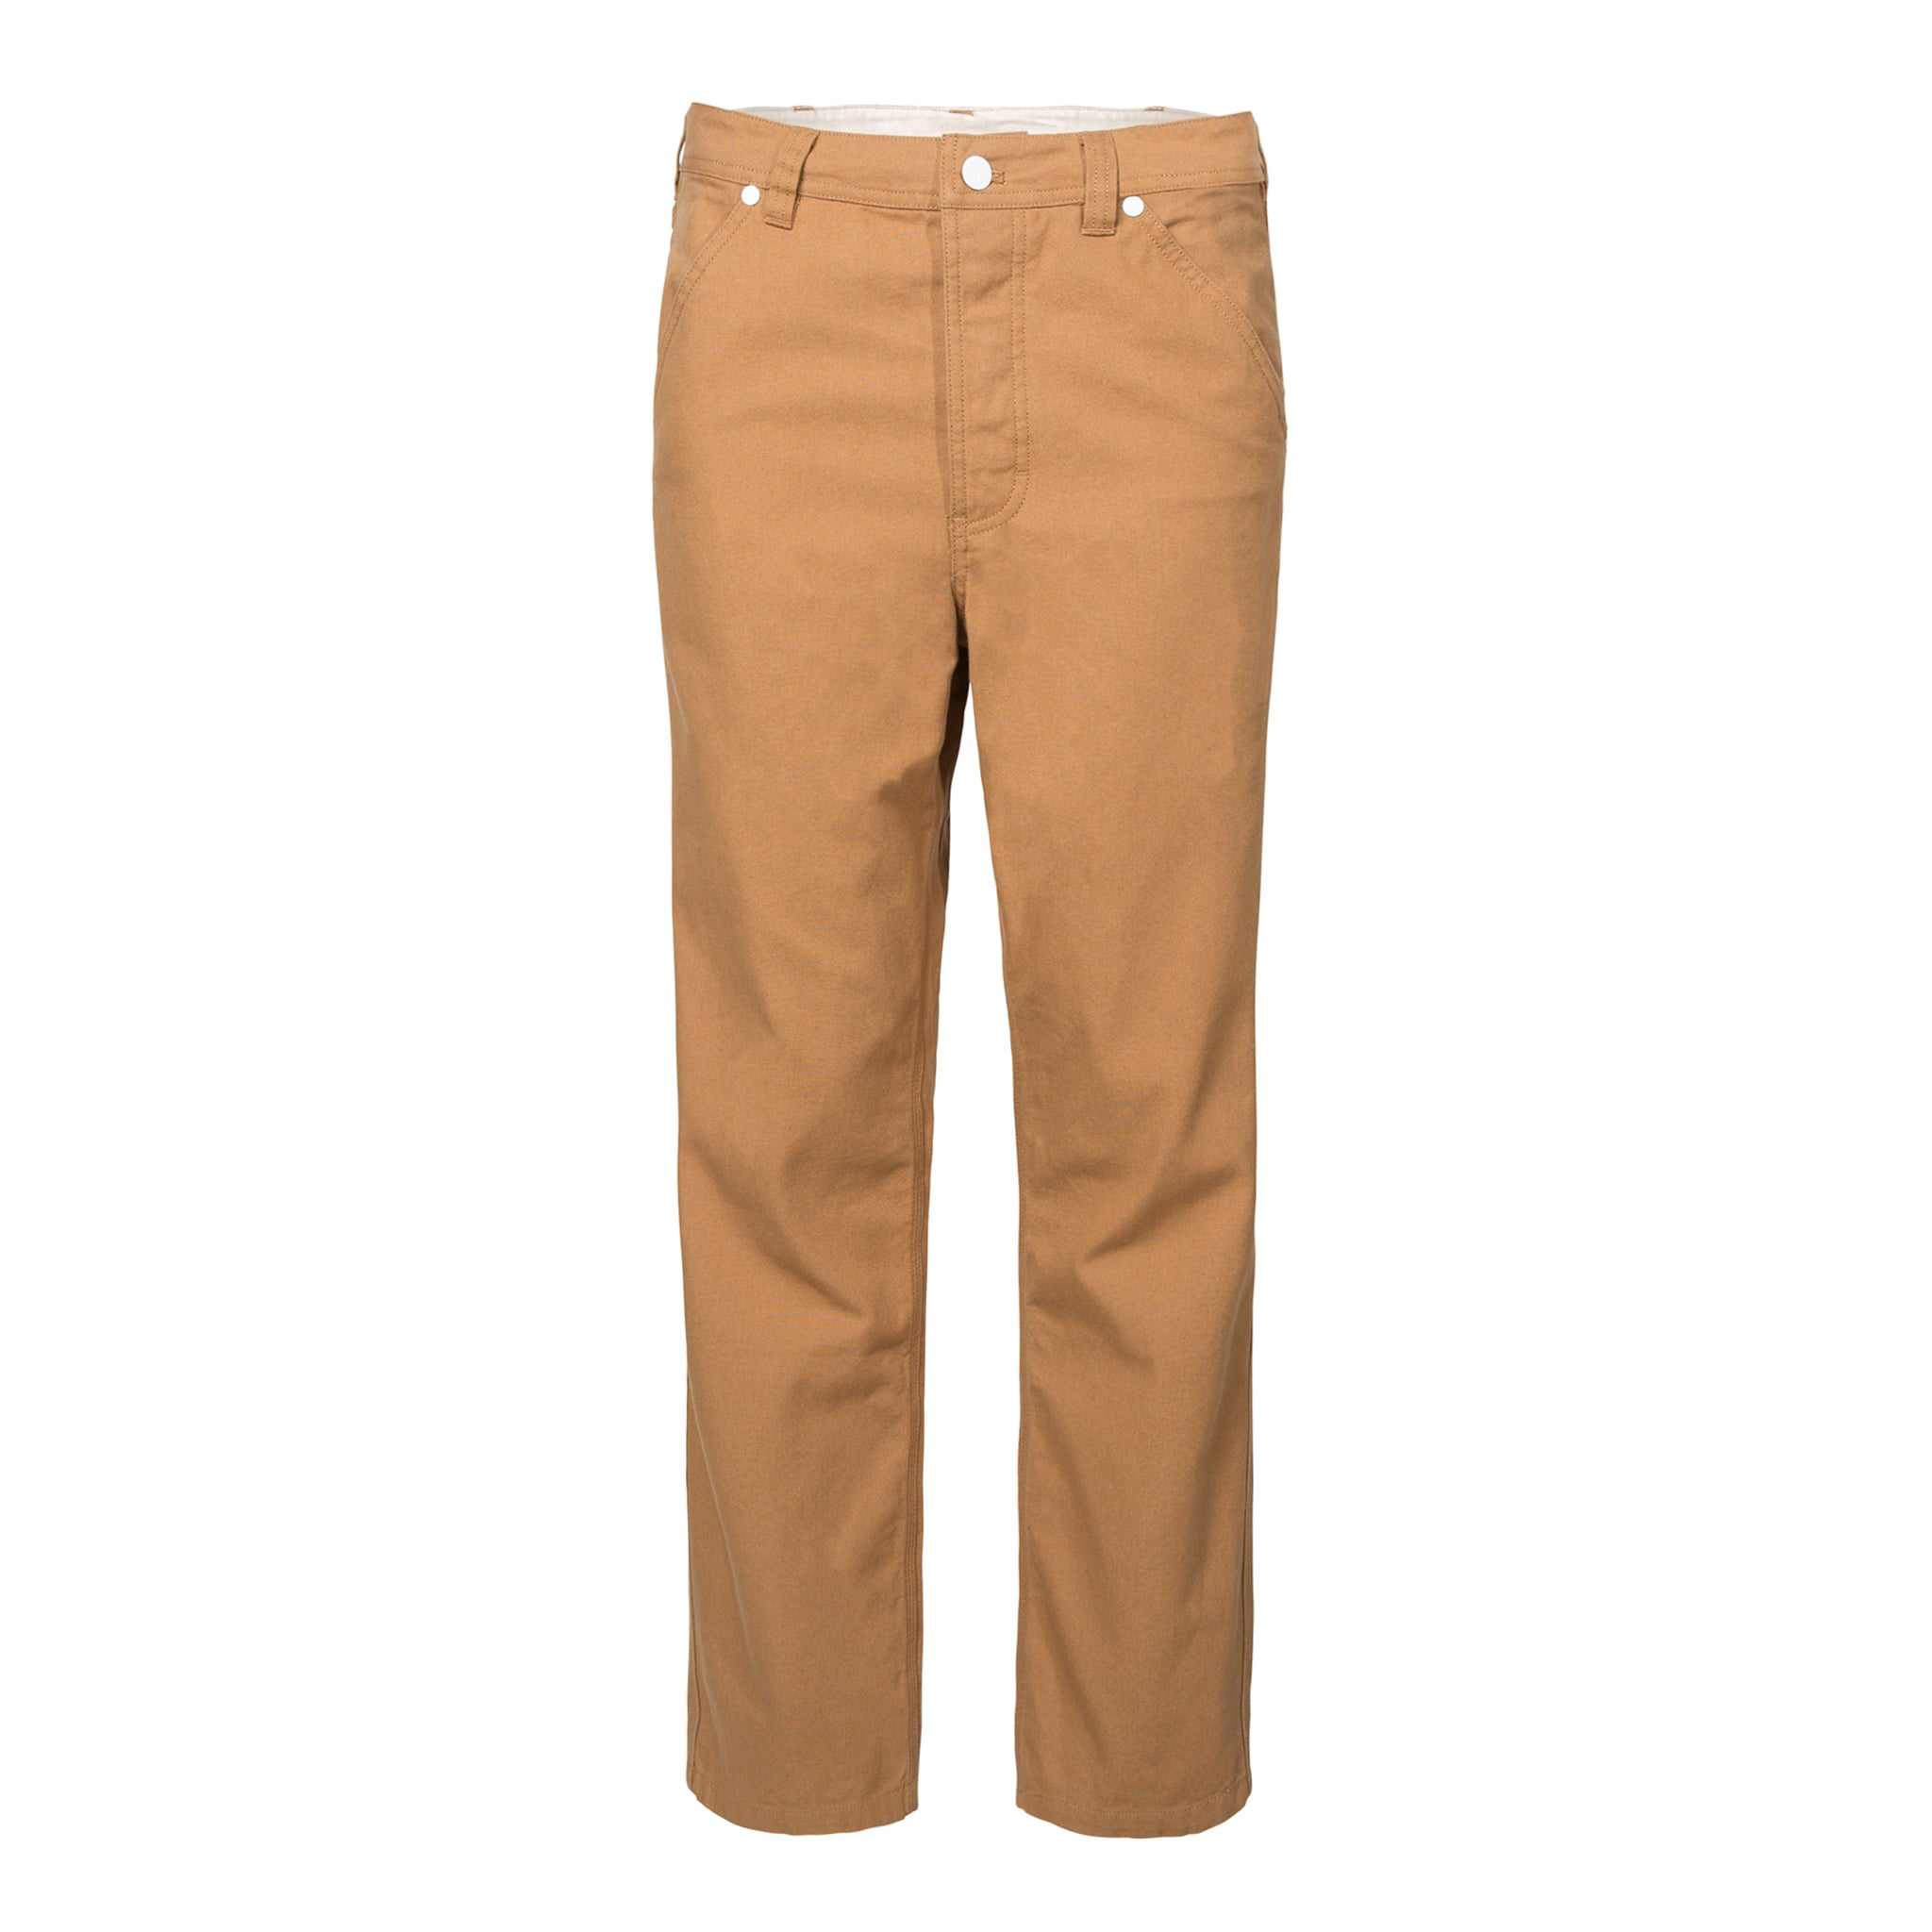 74ad0d1b50 Front product shot of women's chore pants in brown